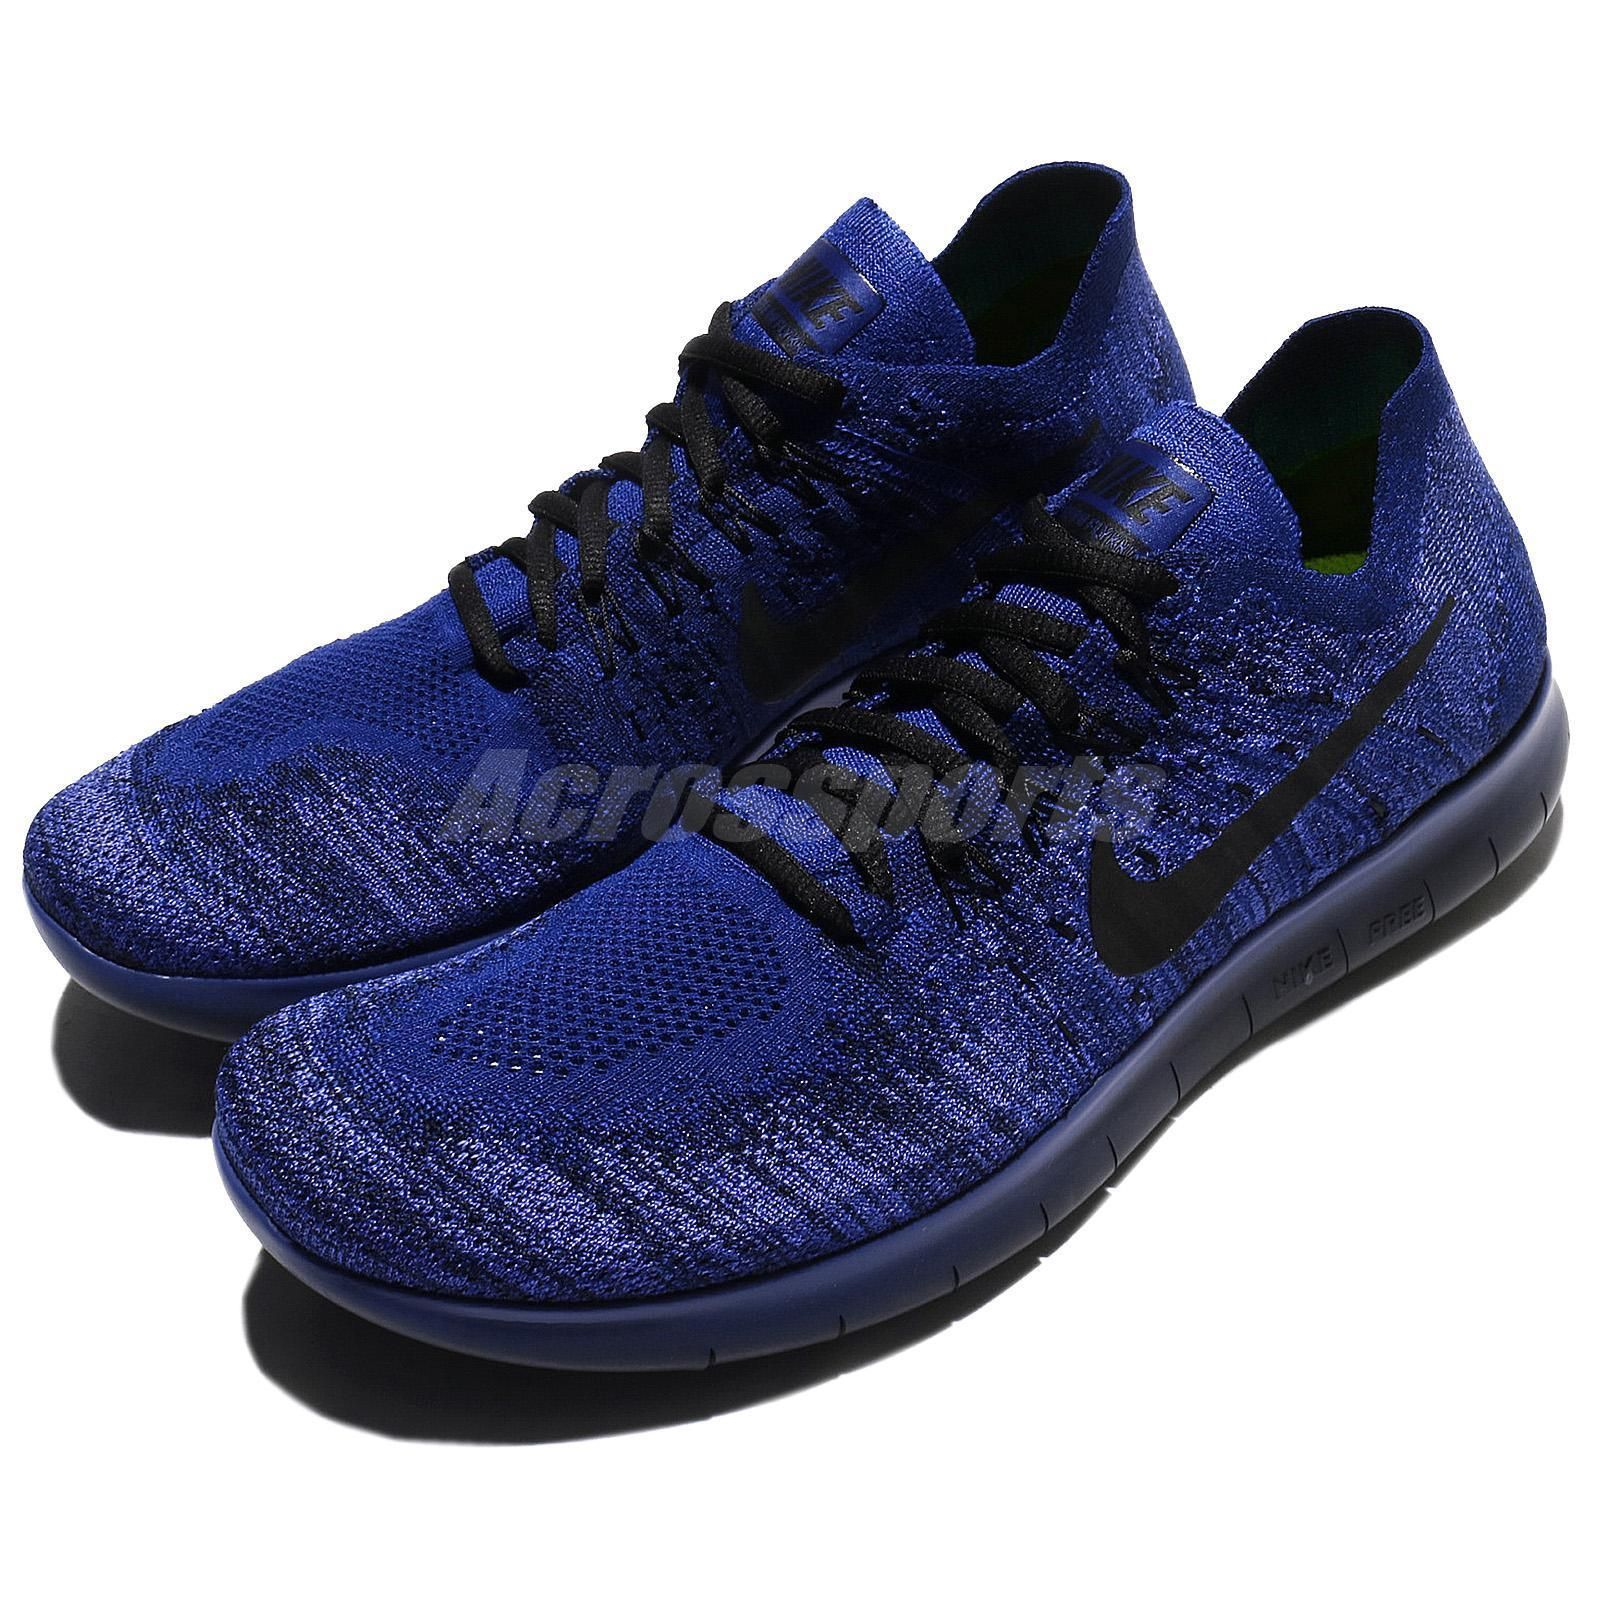 c4330f319a5 ... run wolf grey blue men running shoes trainers 880839 006 b113f official nike  free rn flyknit 2017 deep royal blue men running shoes trainers 880843 406  ...